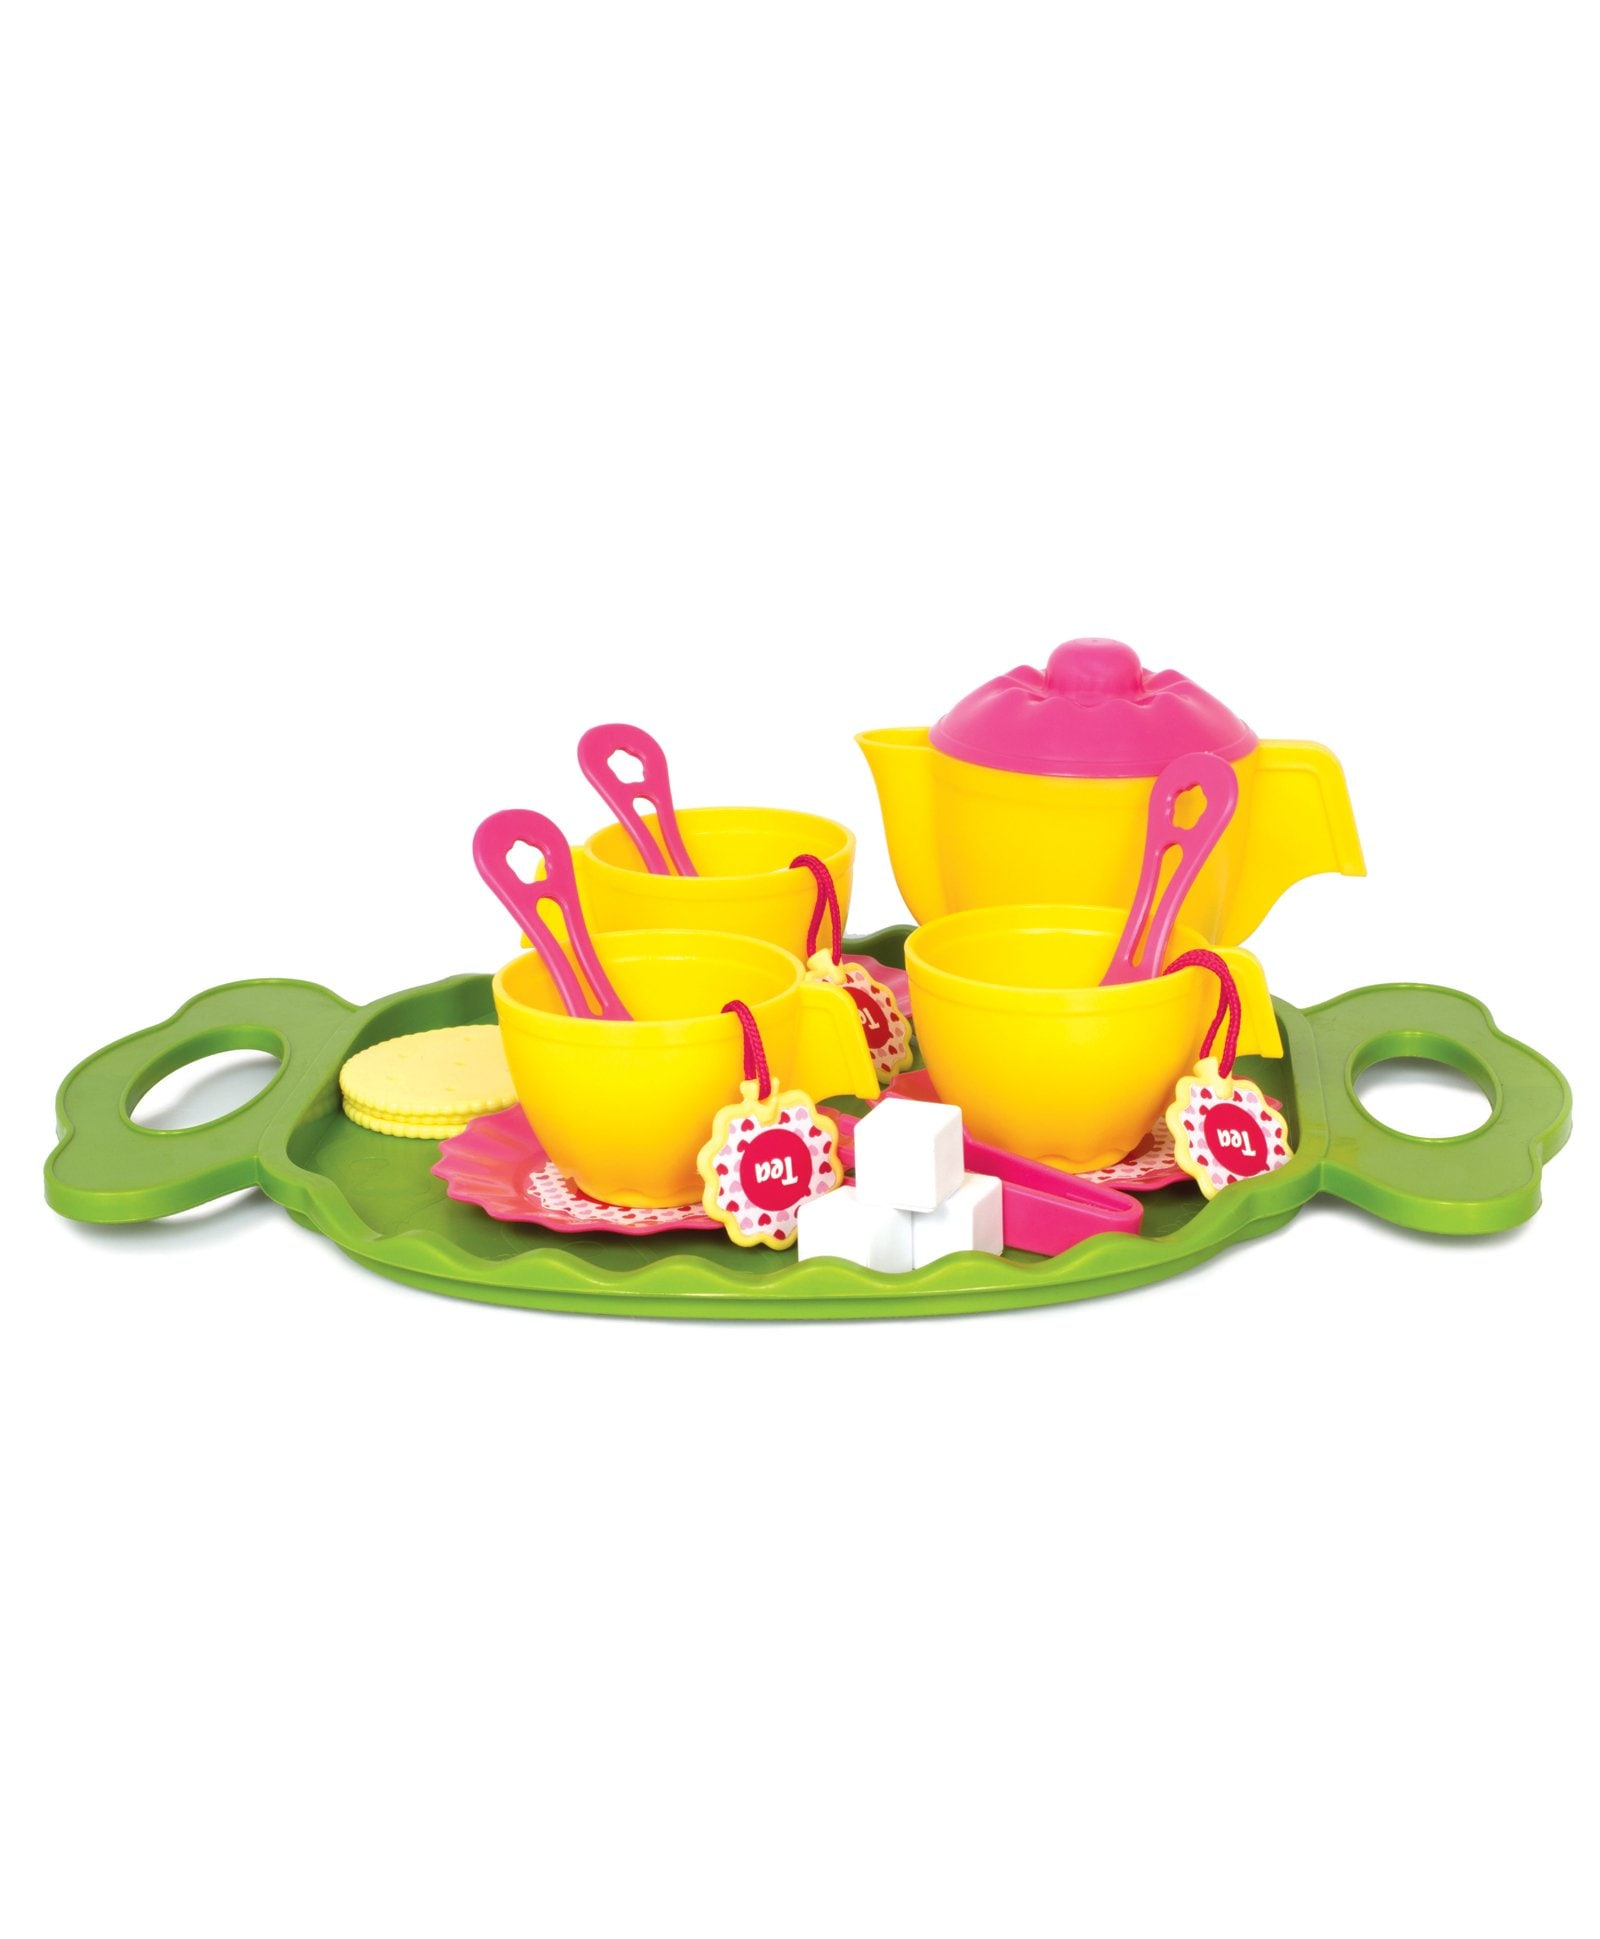 Giggles Tea Party Set, Multi Color  9785300